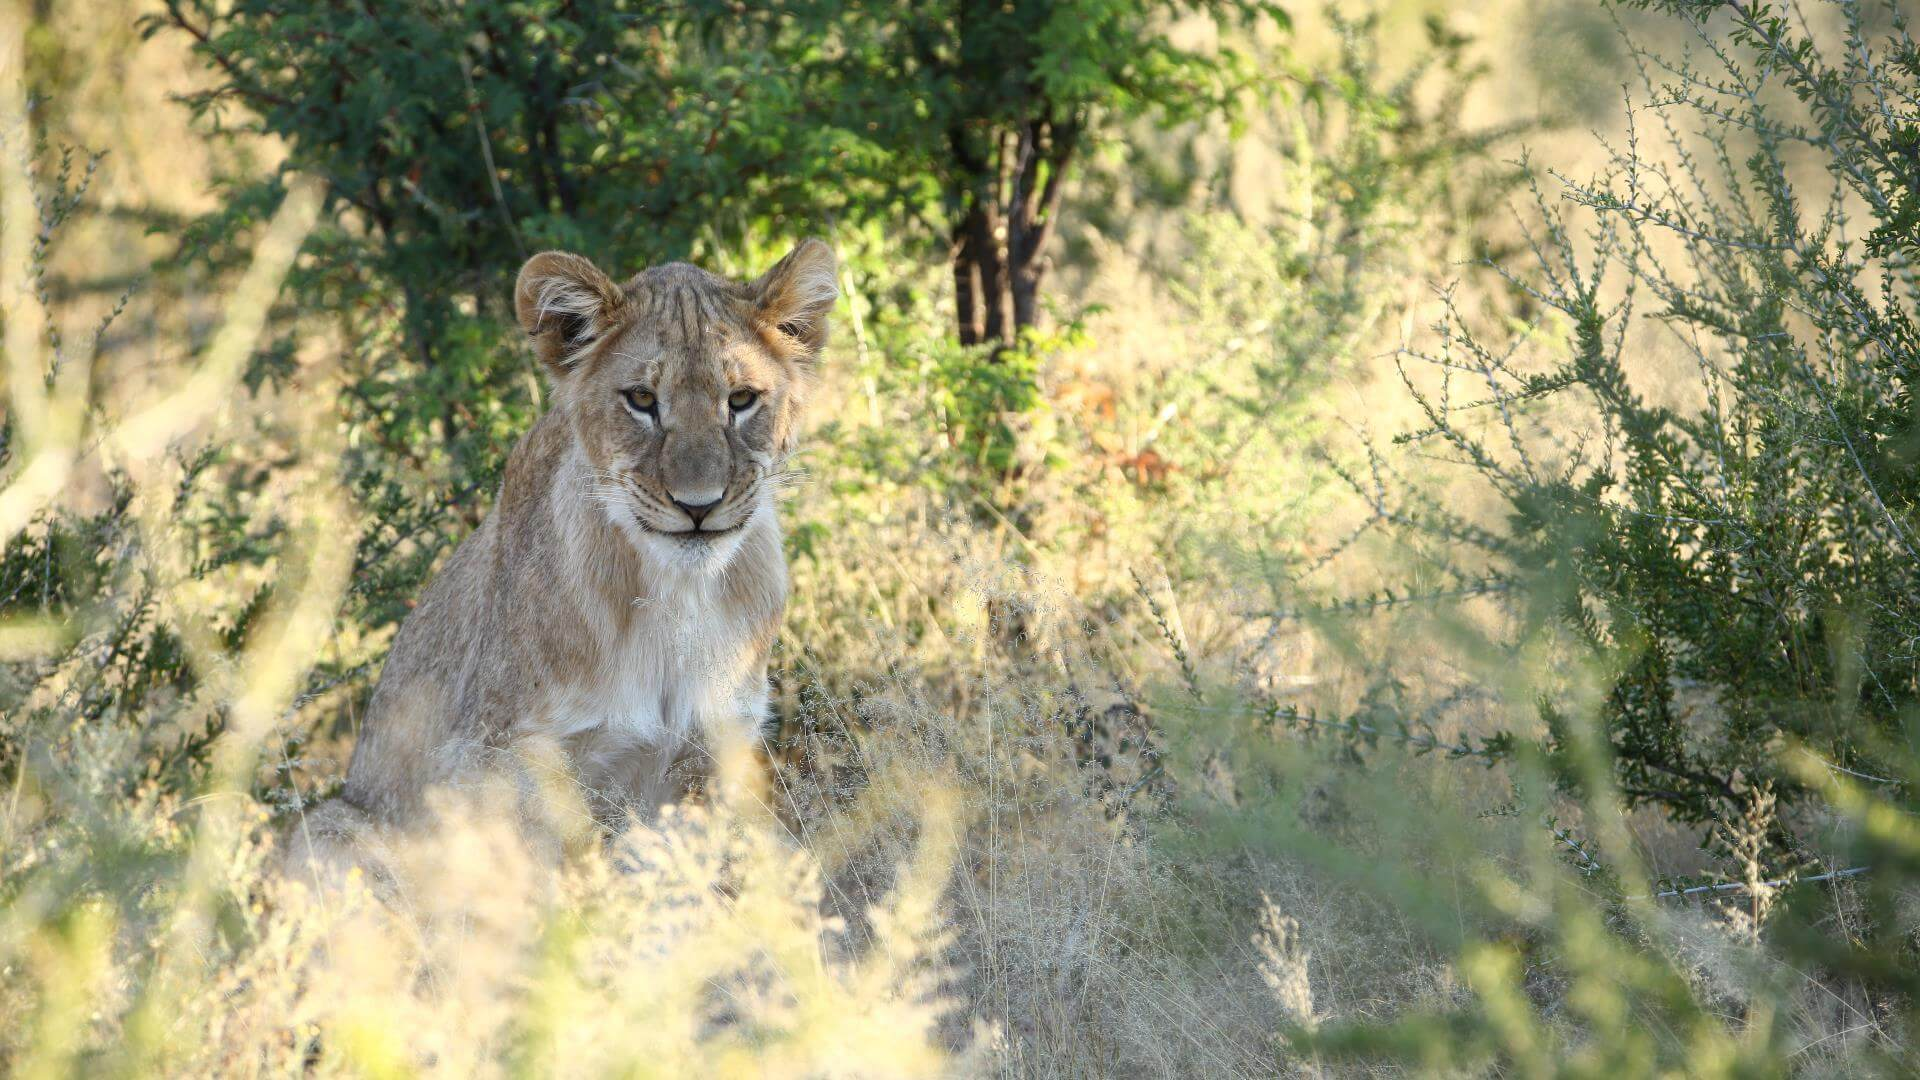 Jung lion hiding, Kruger National Park, South Africa